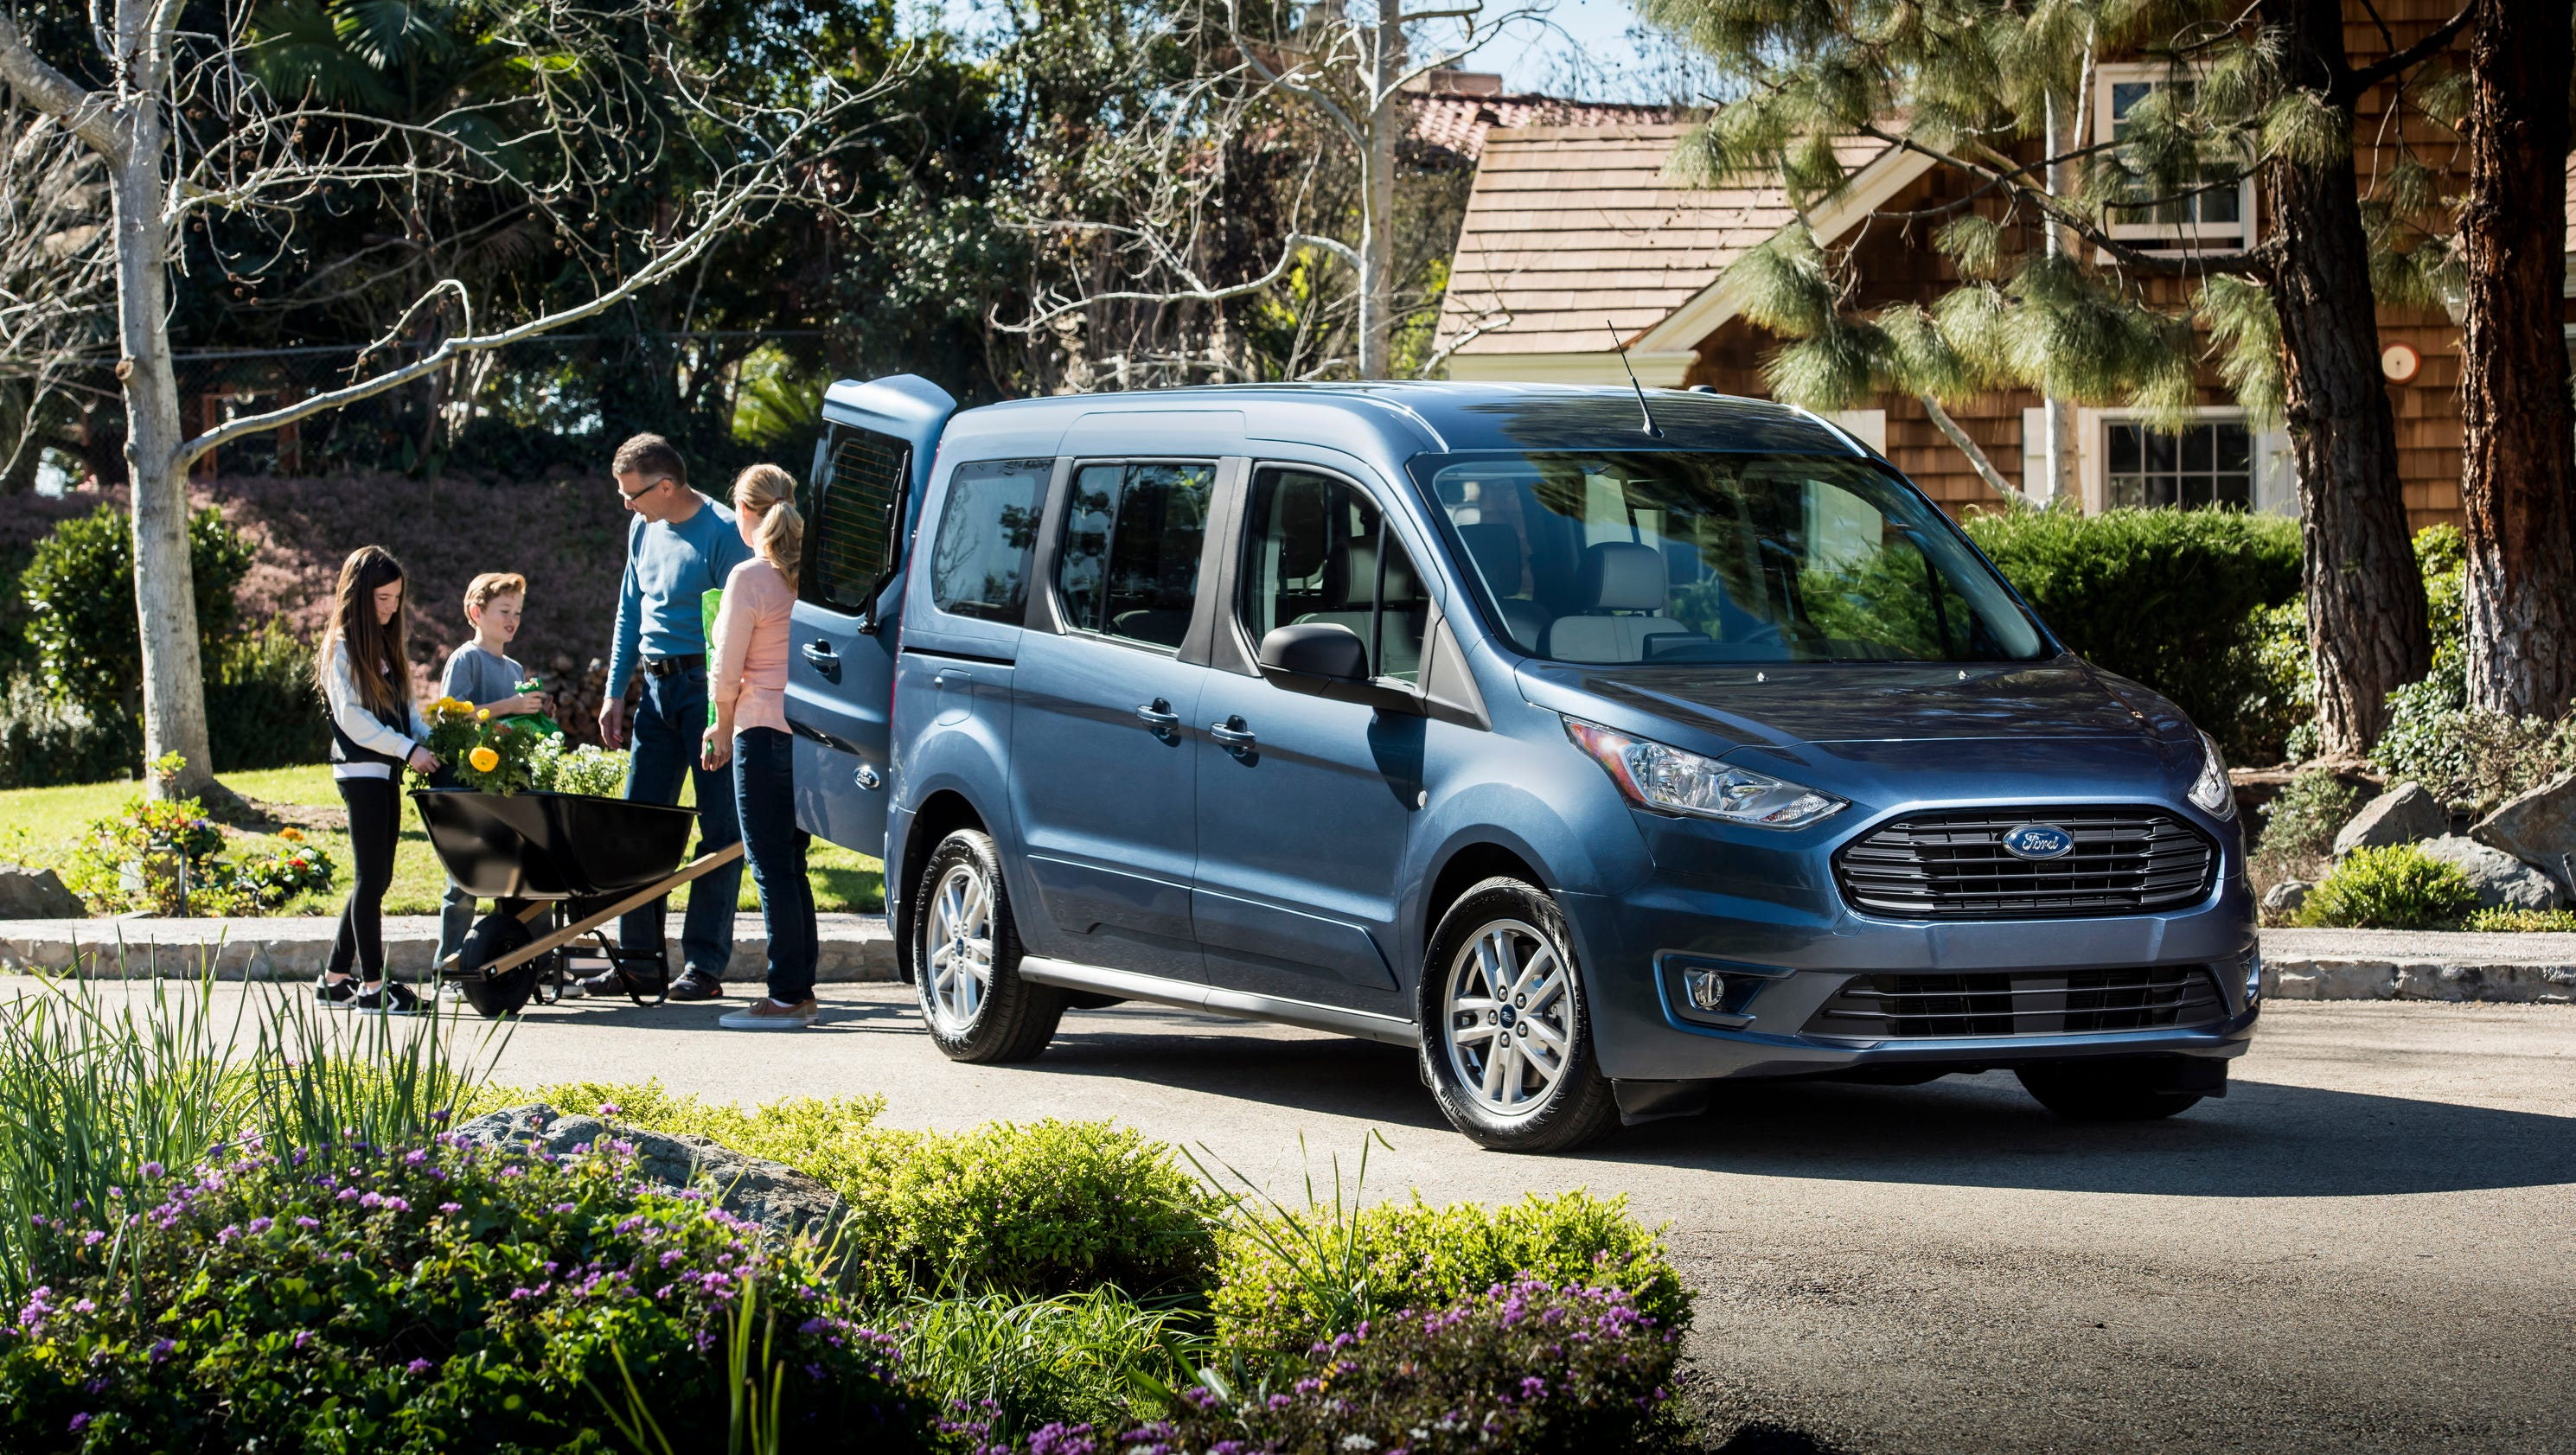 Ford shows new Transit Connect van, aims it at Boomers